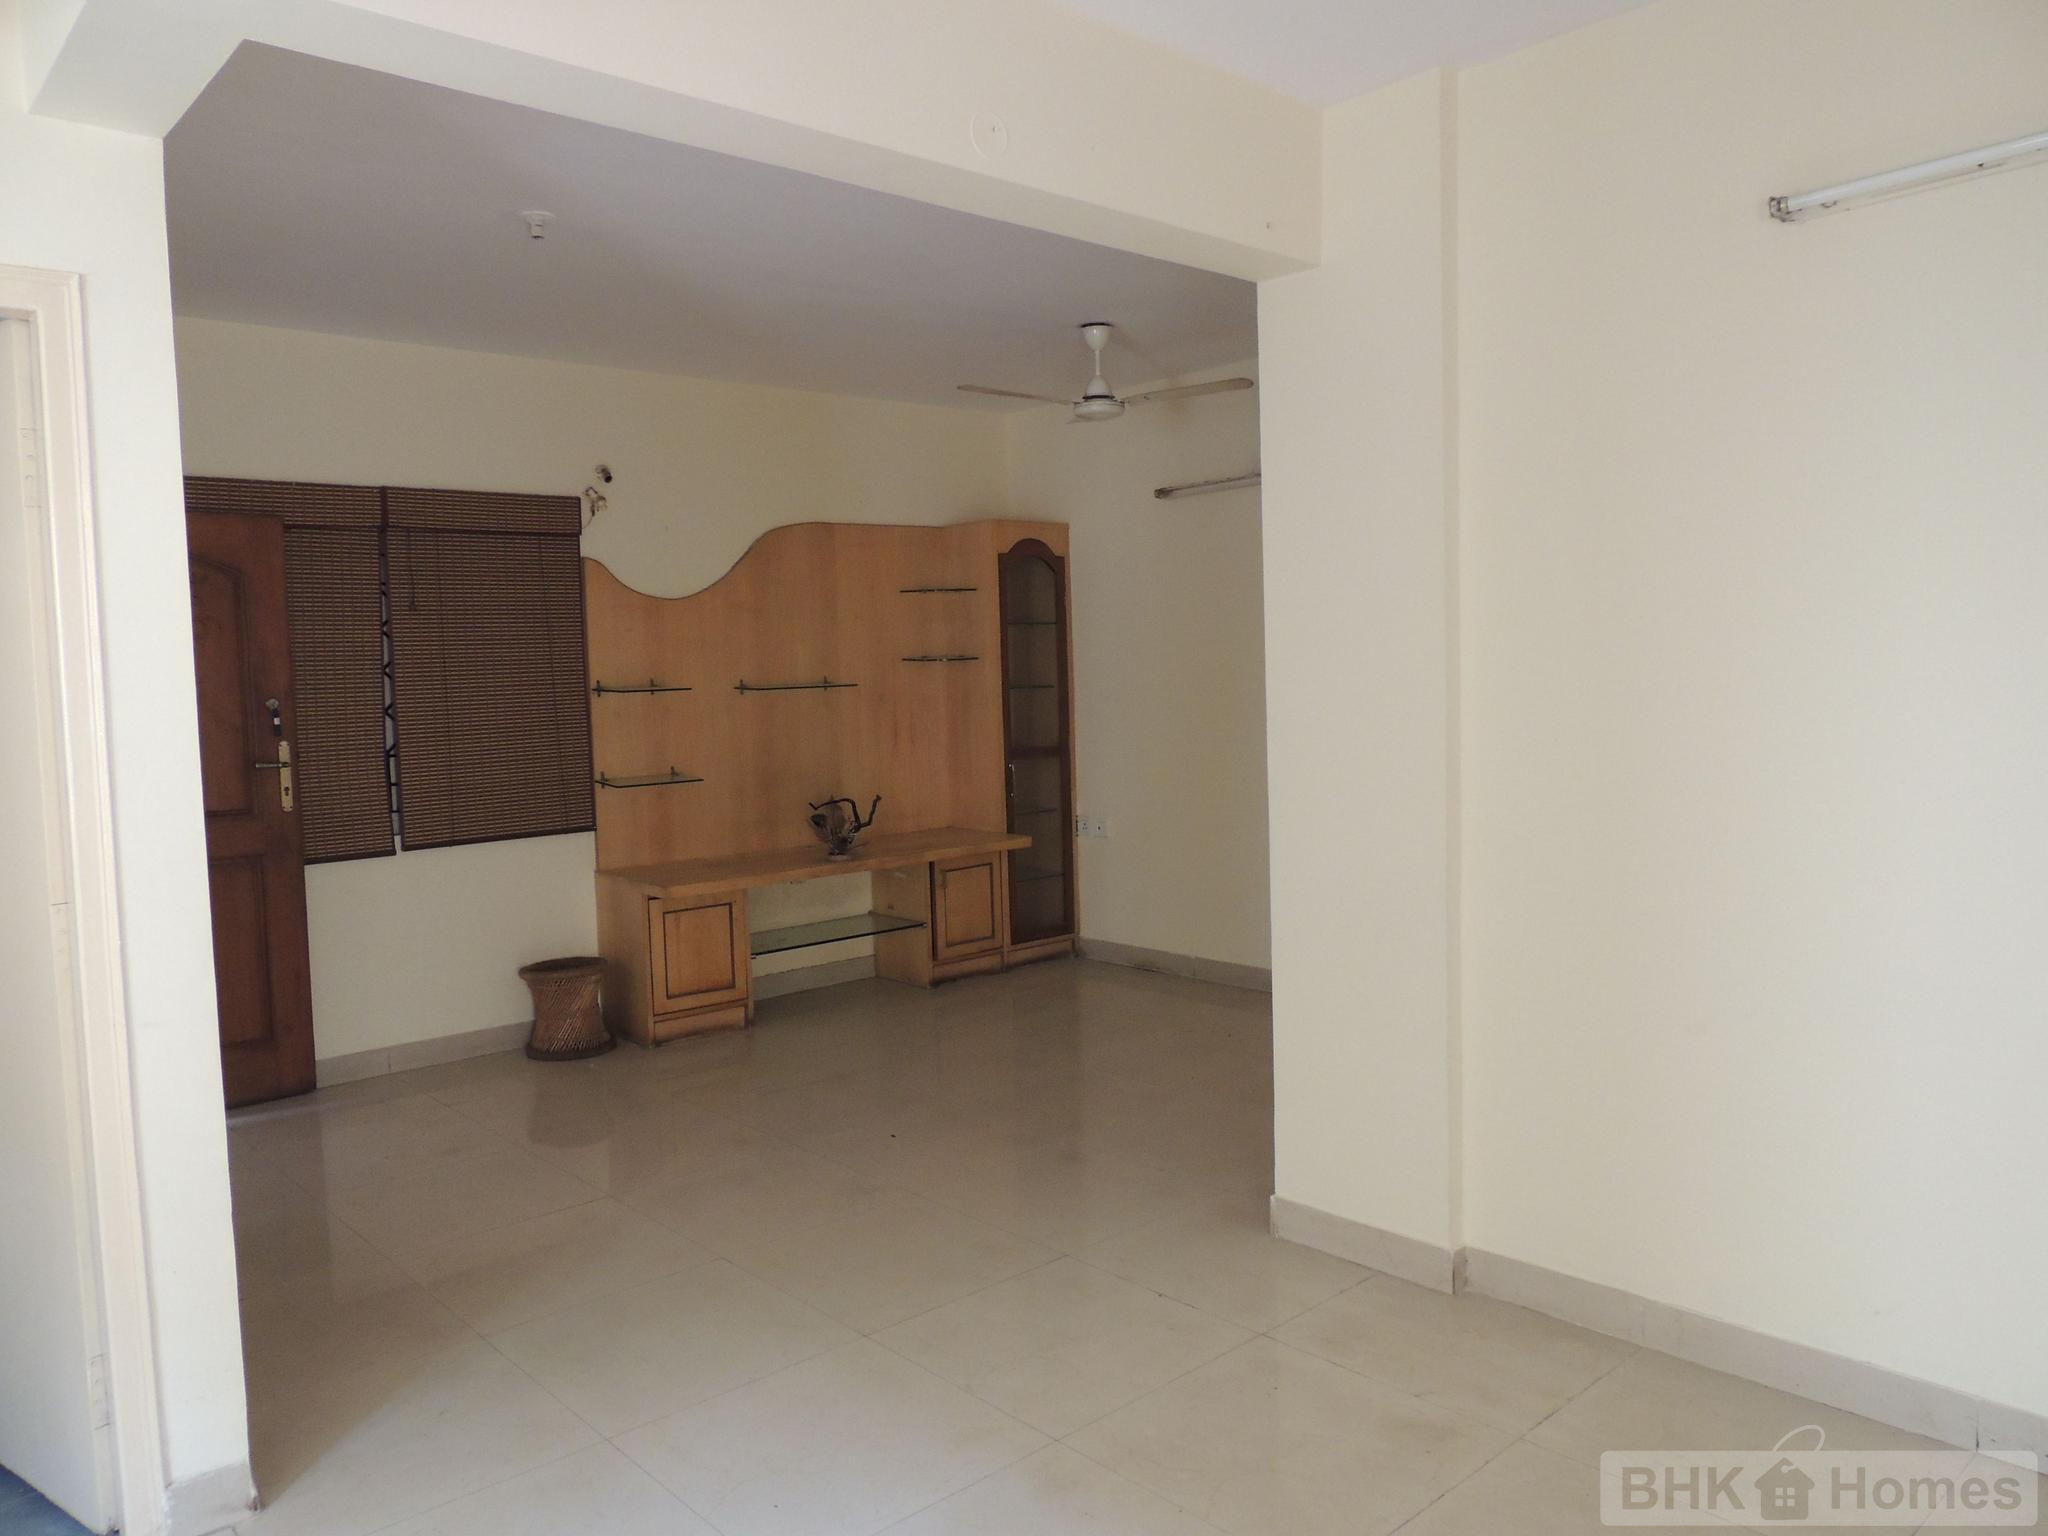 2 BHK Apartment for Sale in Manar Sungleam